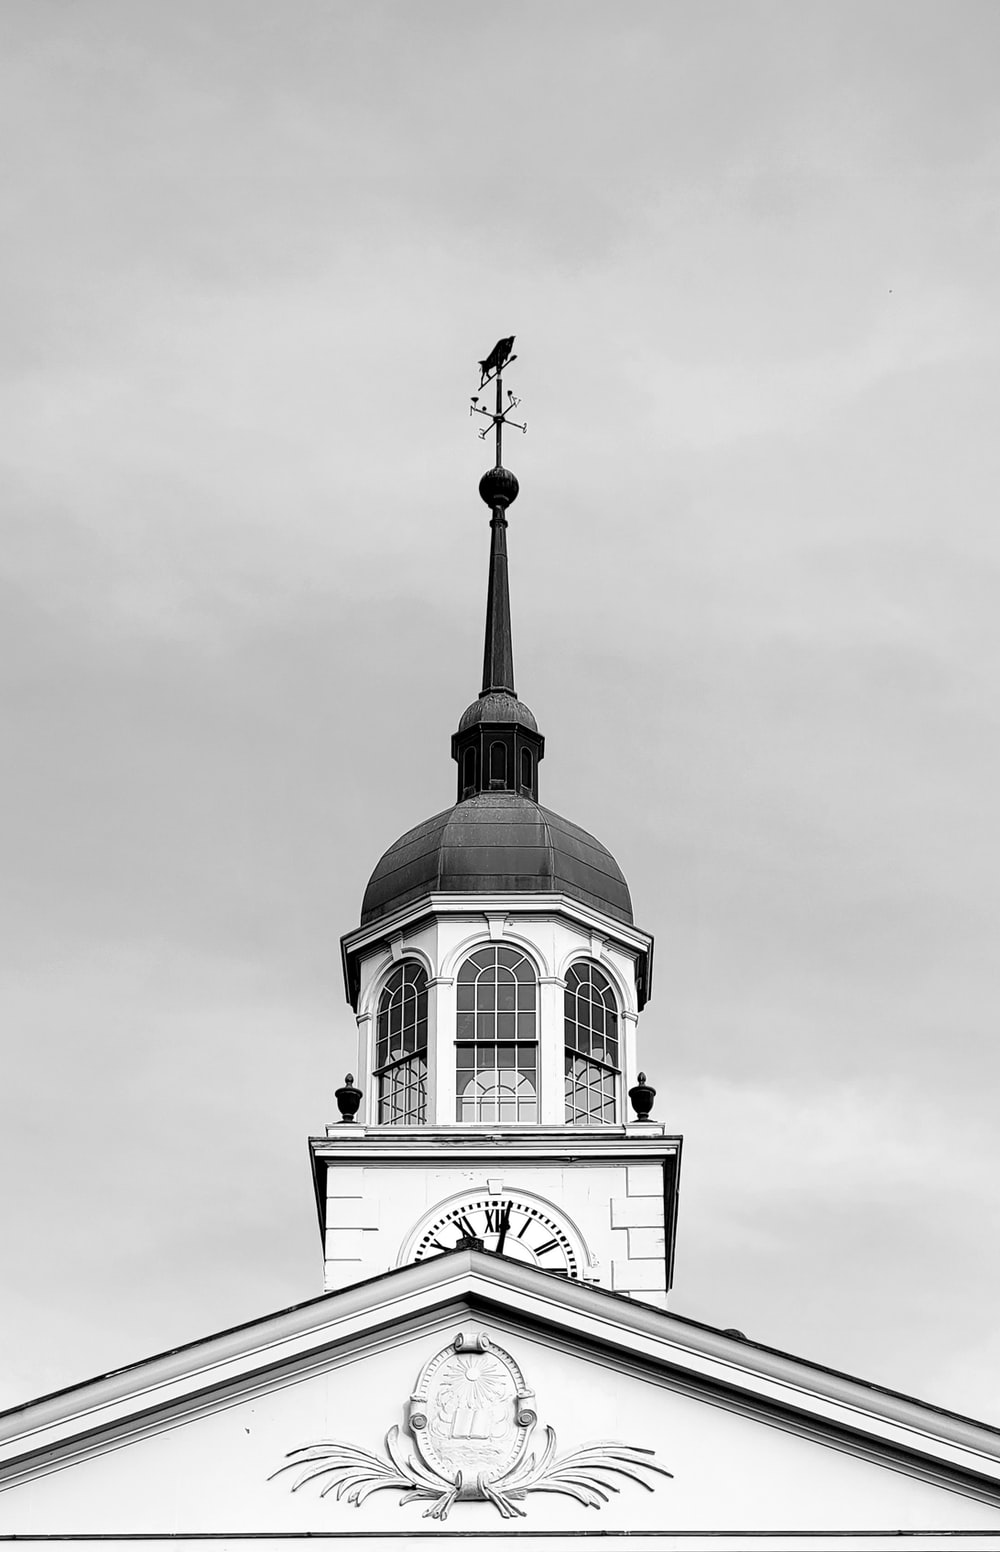 grayscale photo of clock tower